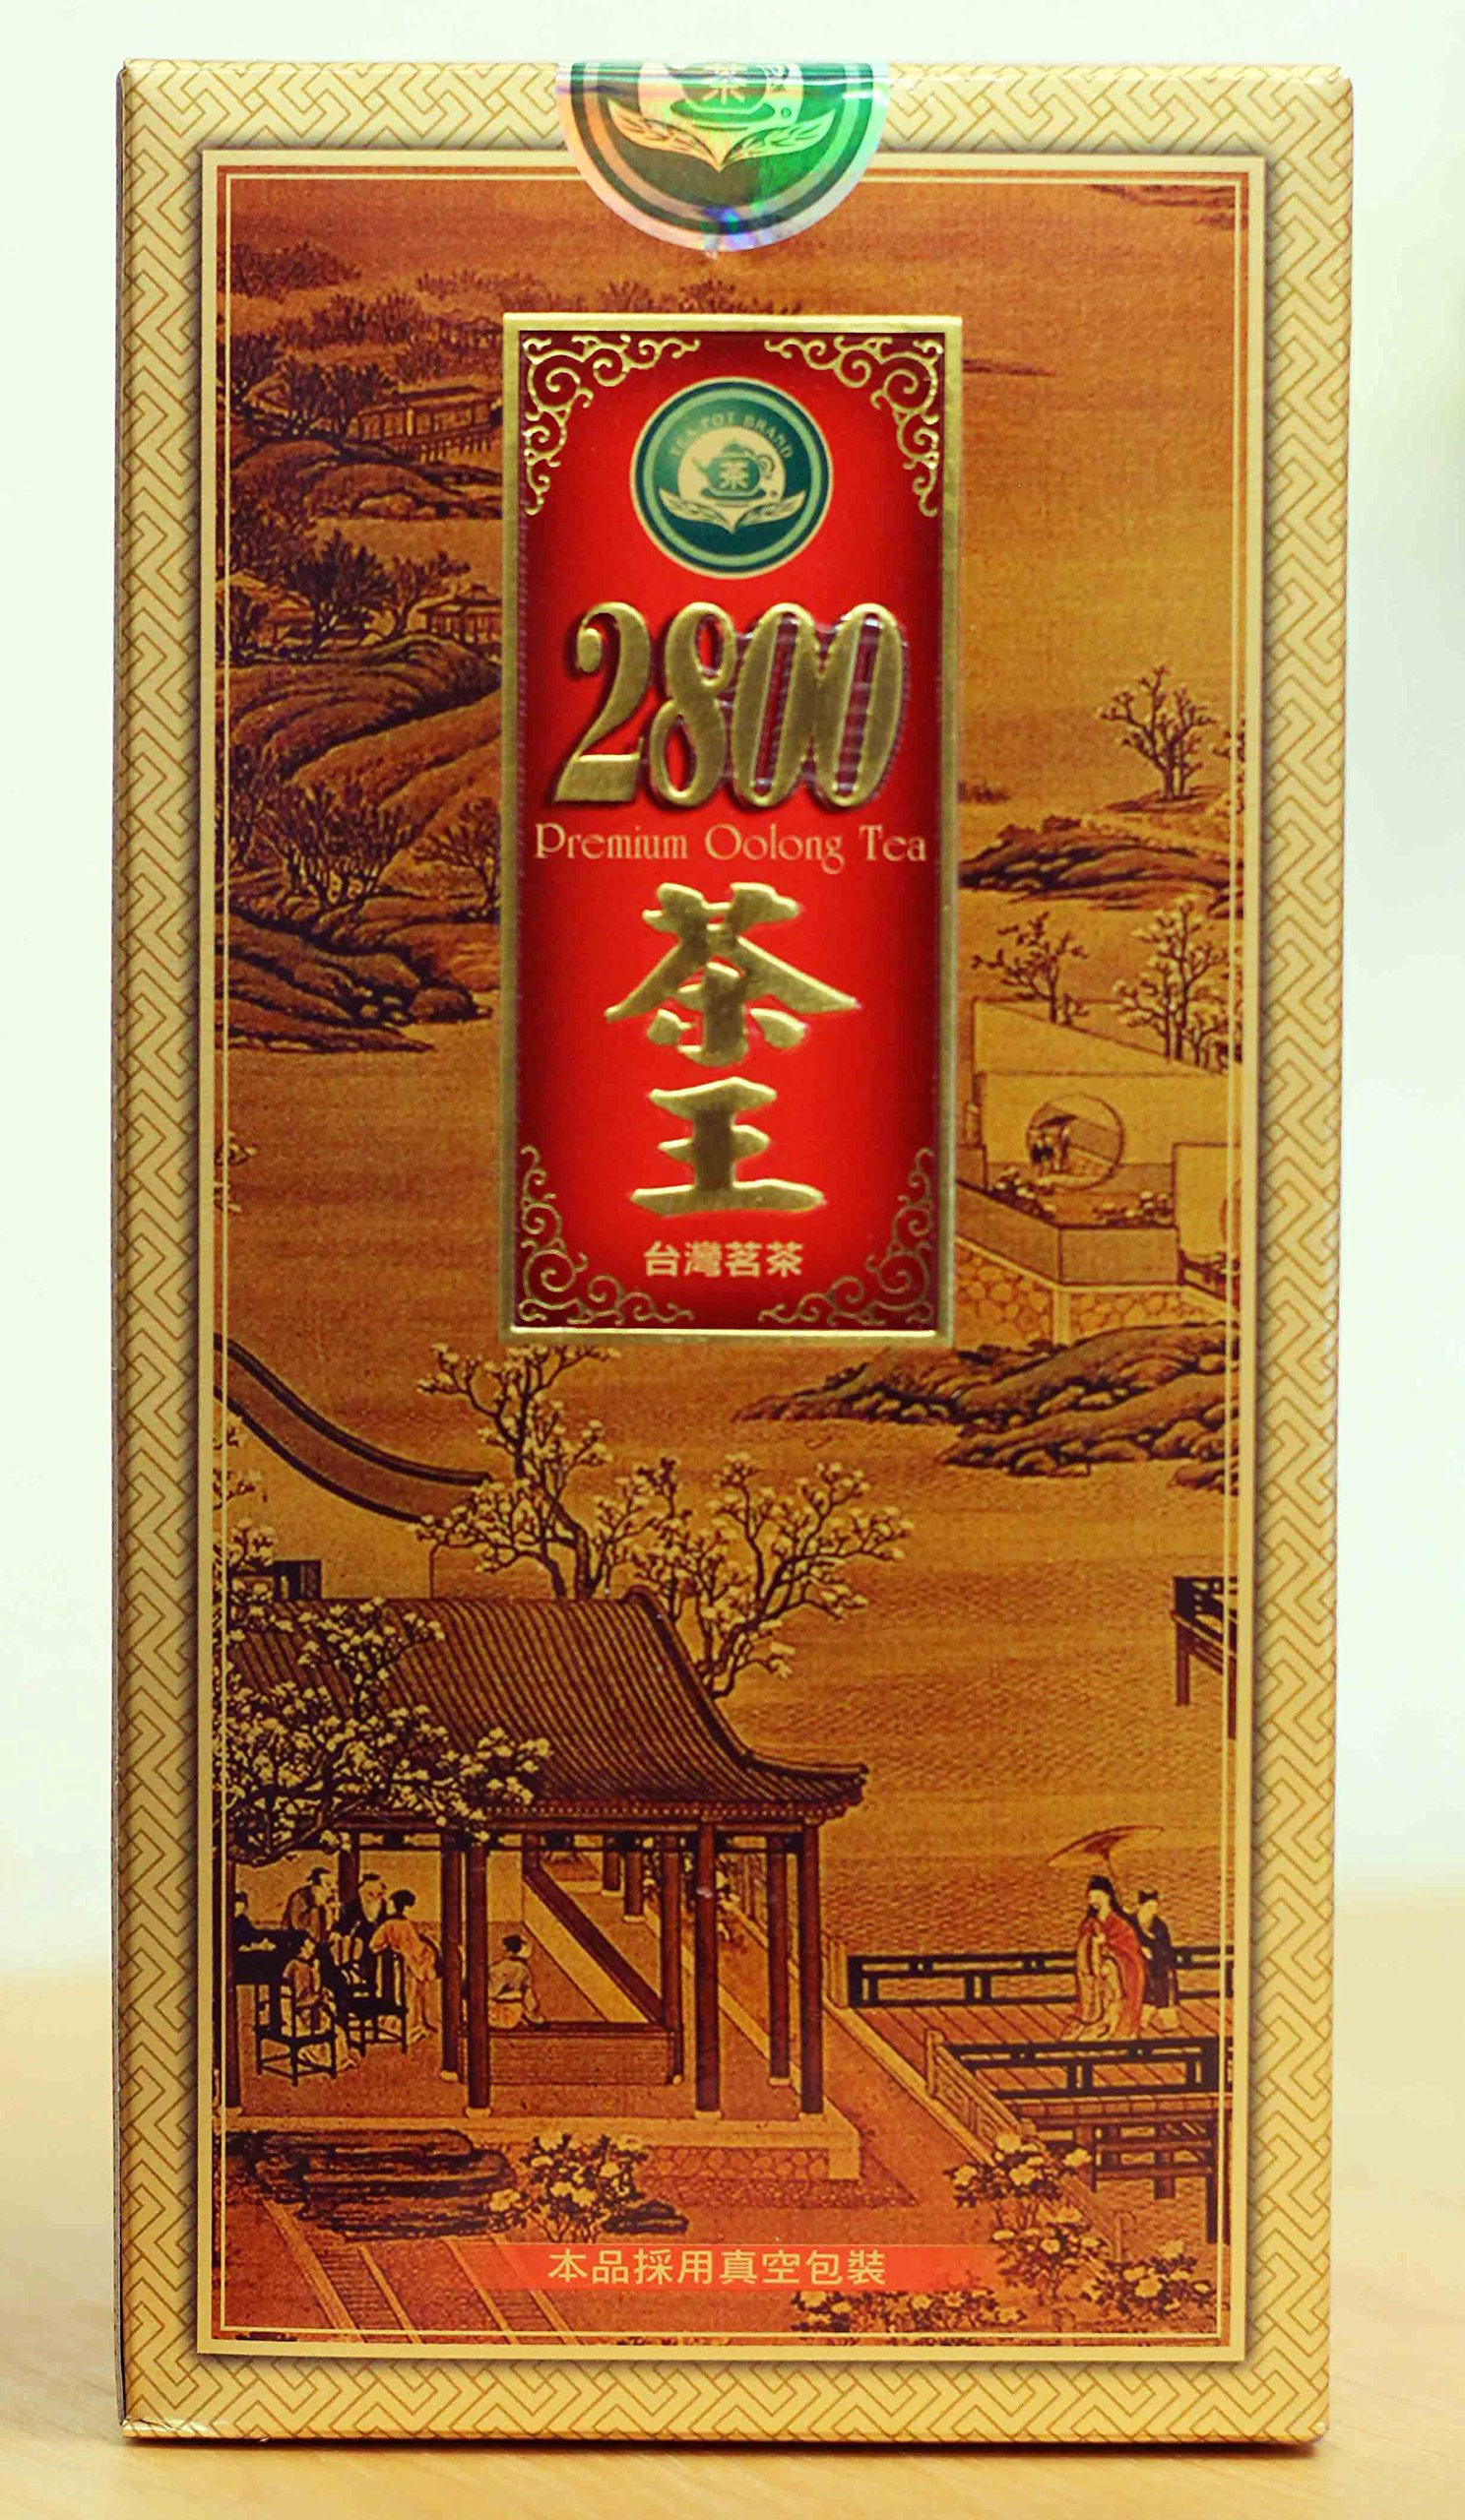 2800 Premium Oolong Tea (300g, 10.6oz)